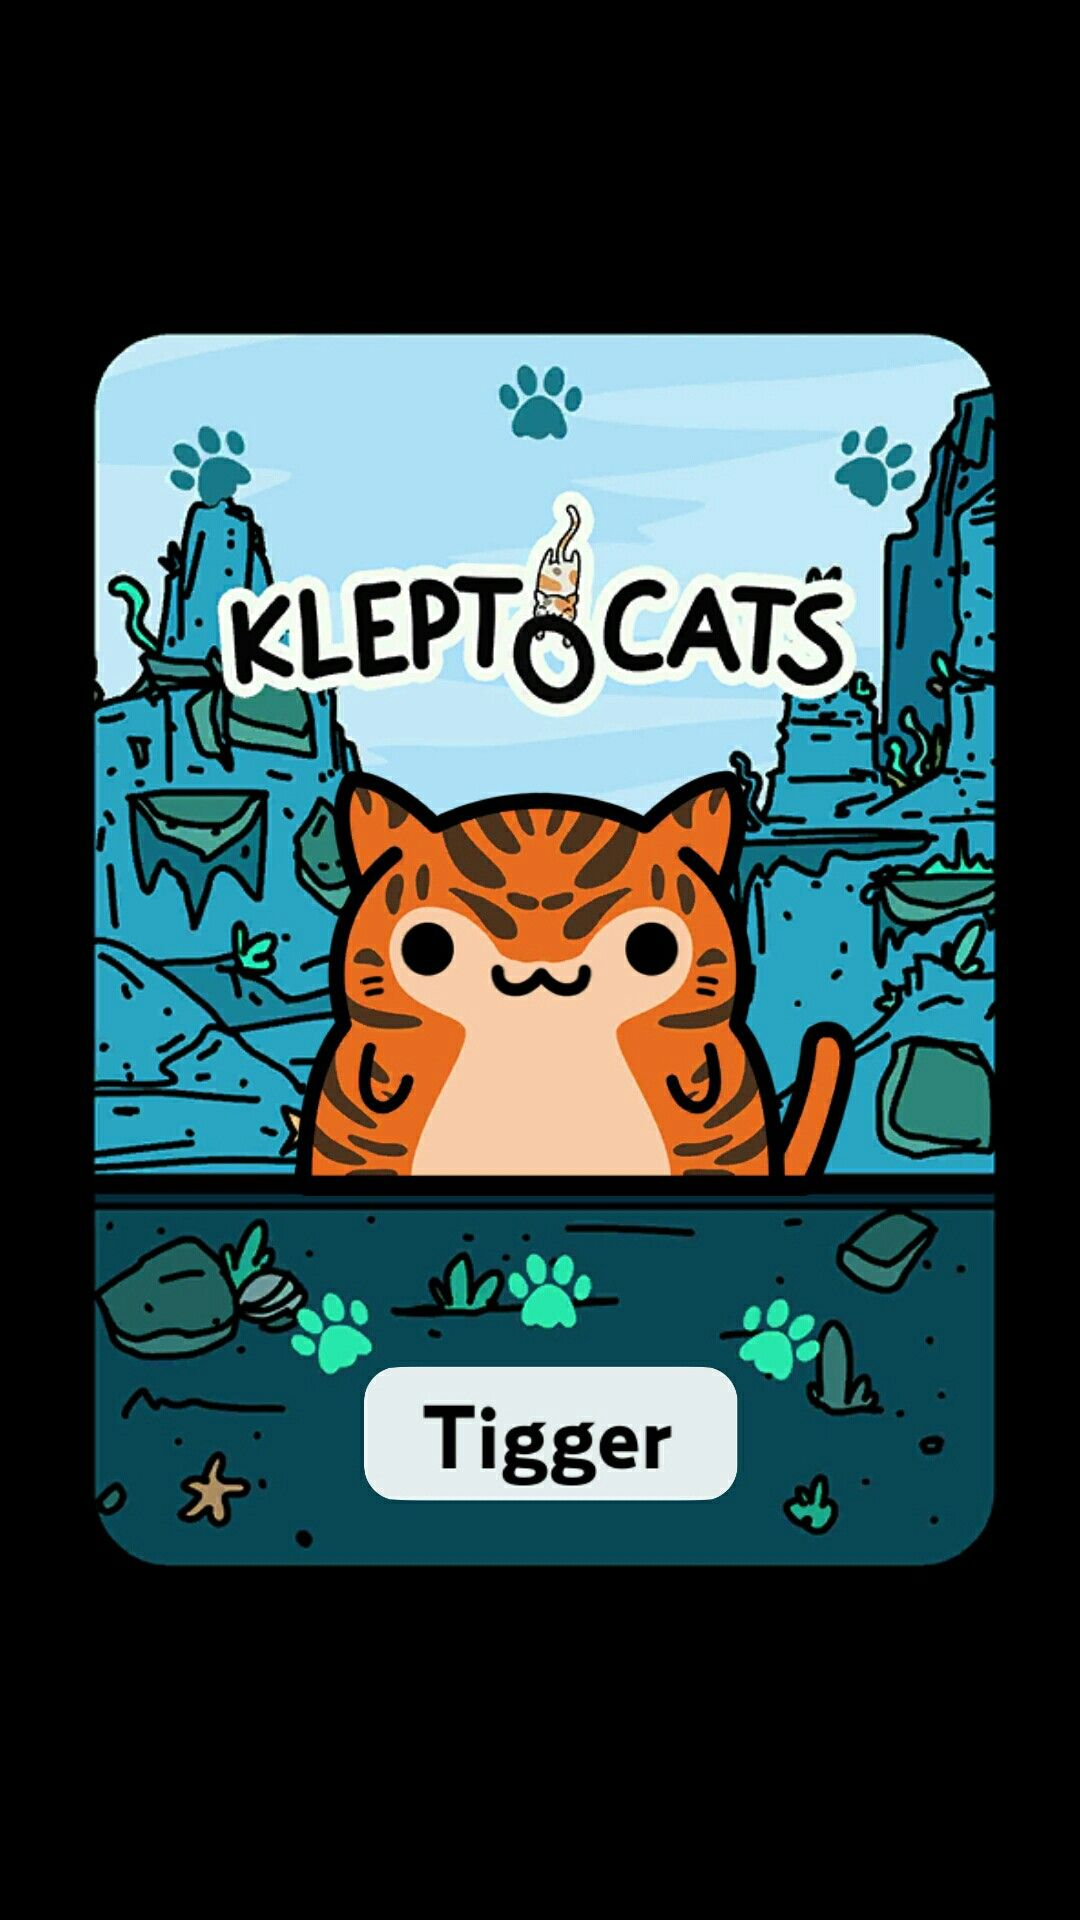 Pin by Sheneil Shirley on KLEPTOCATS Kitty games, Klepto